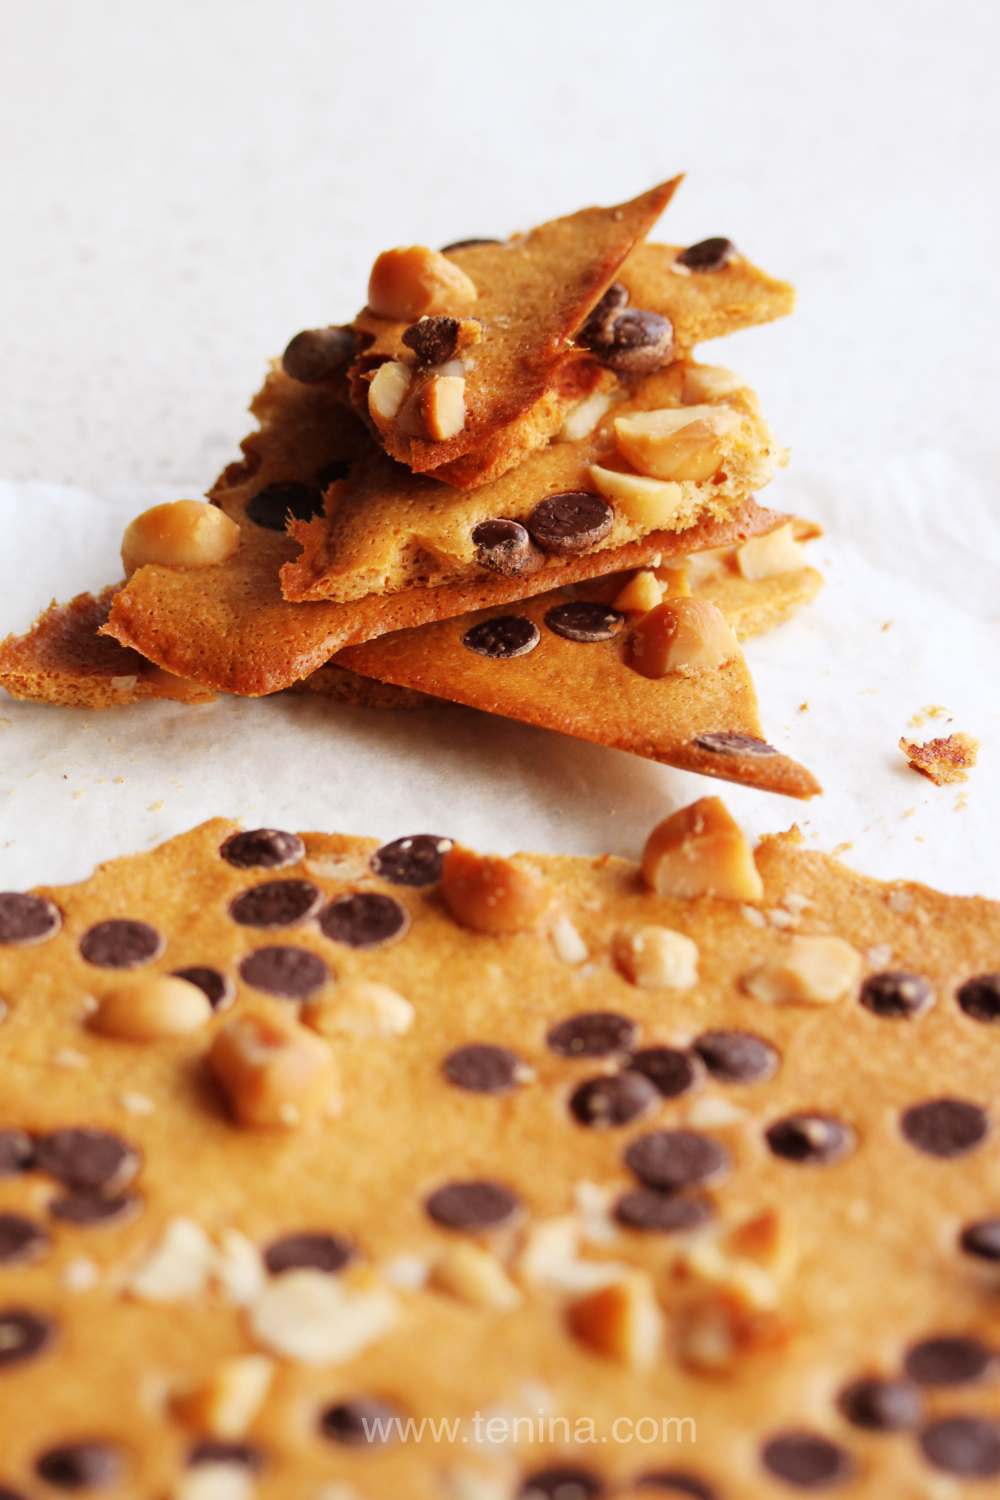 Macadamia Chocolate Wafers